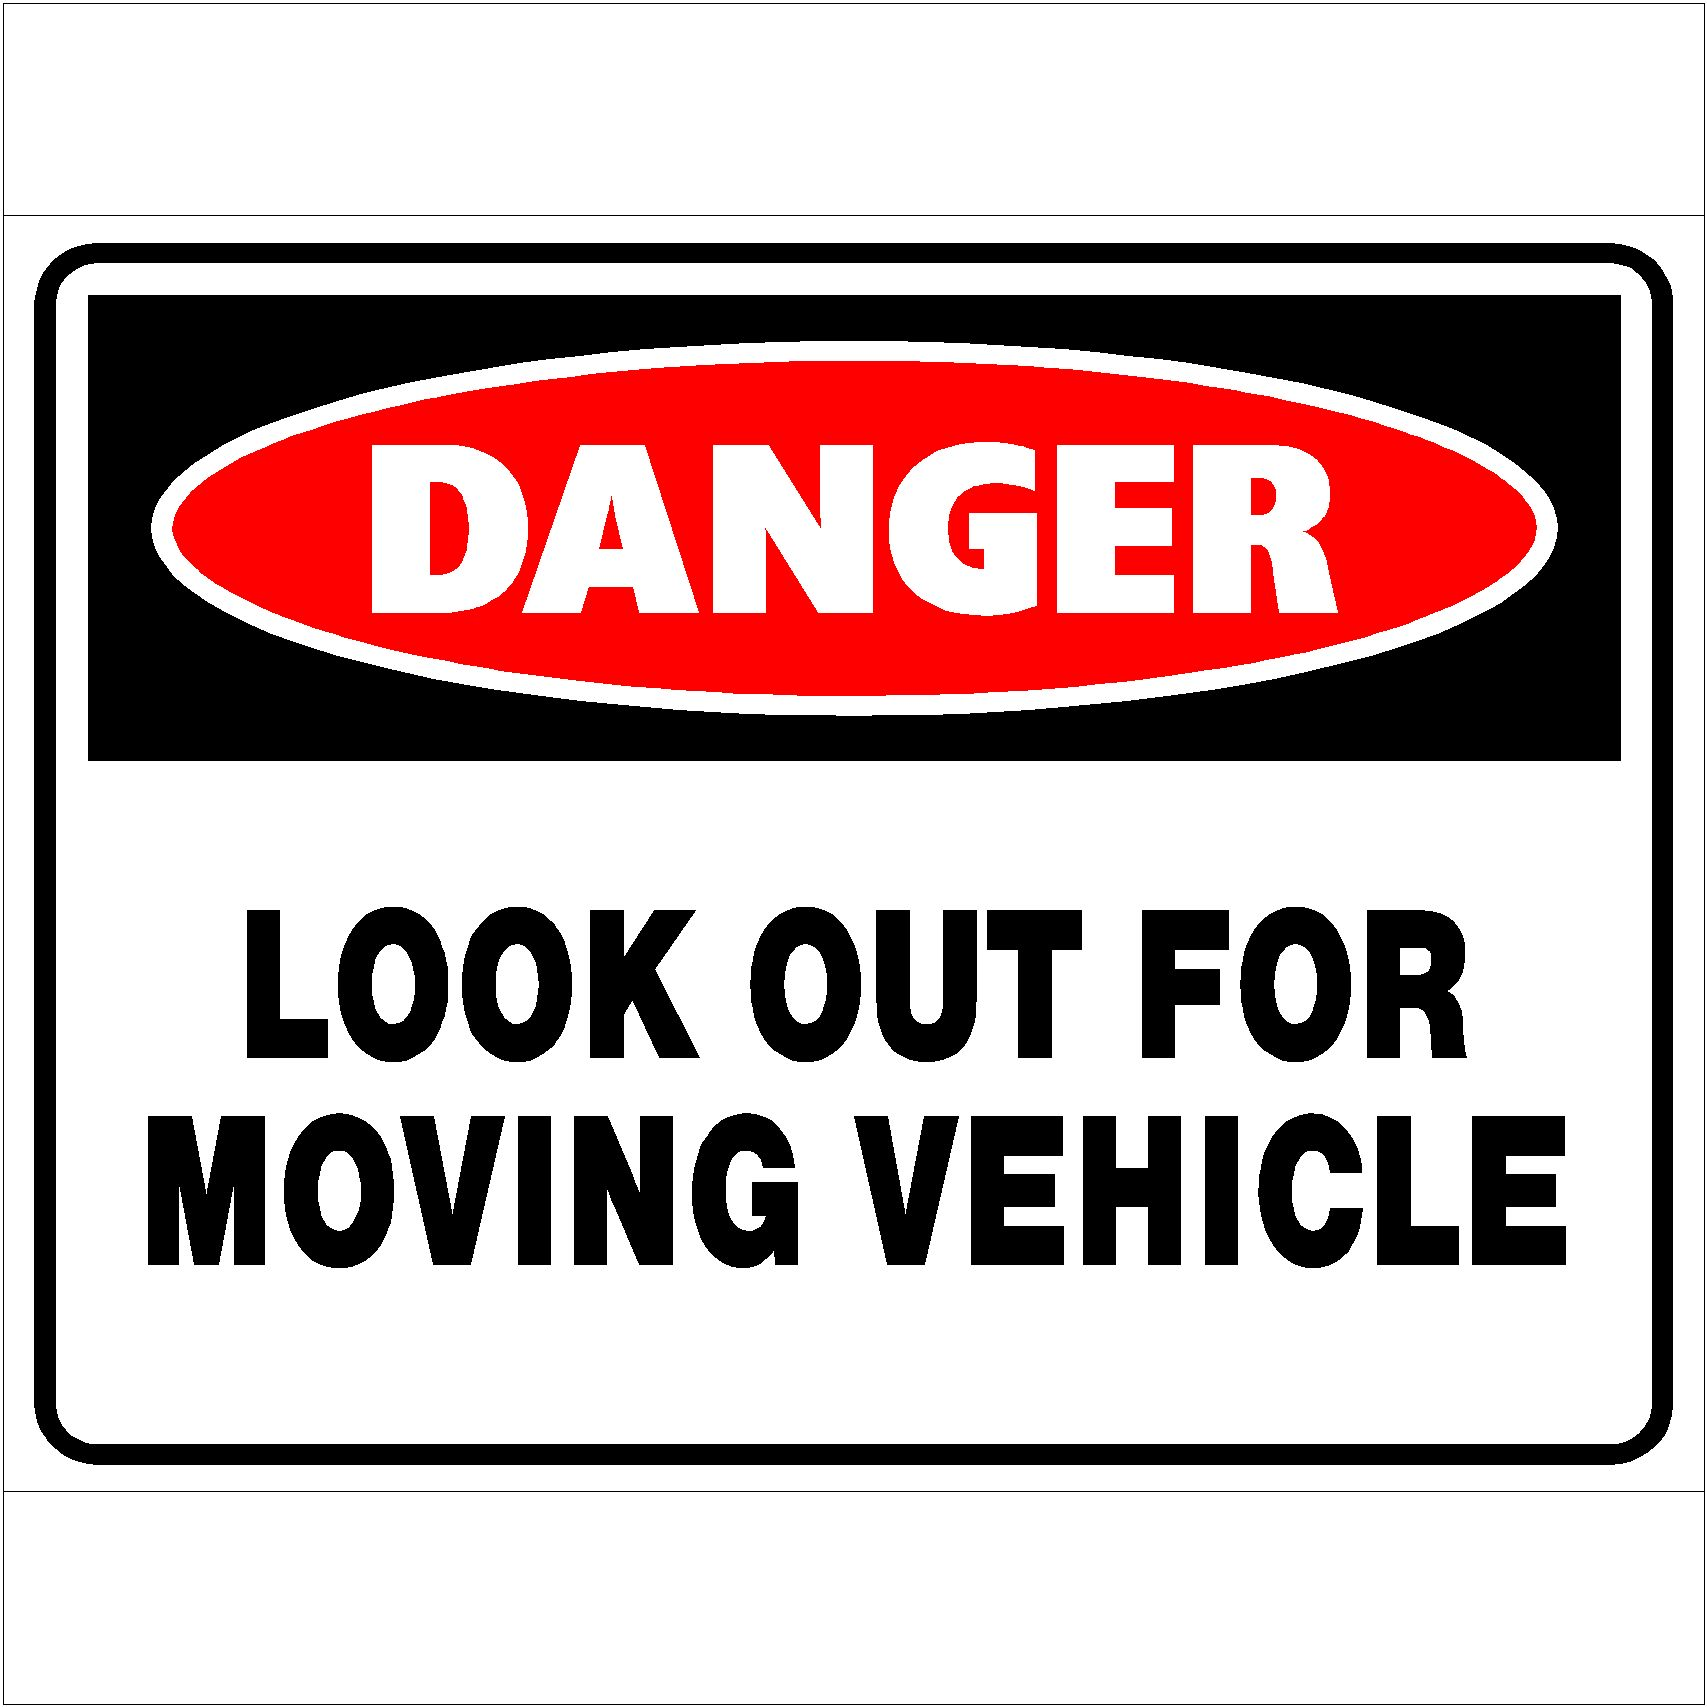 Danger Look Out For Moving Vehicle